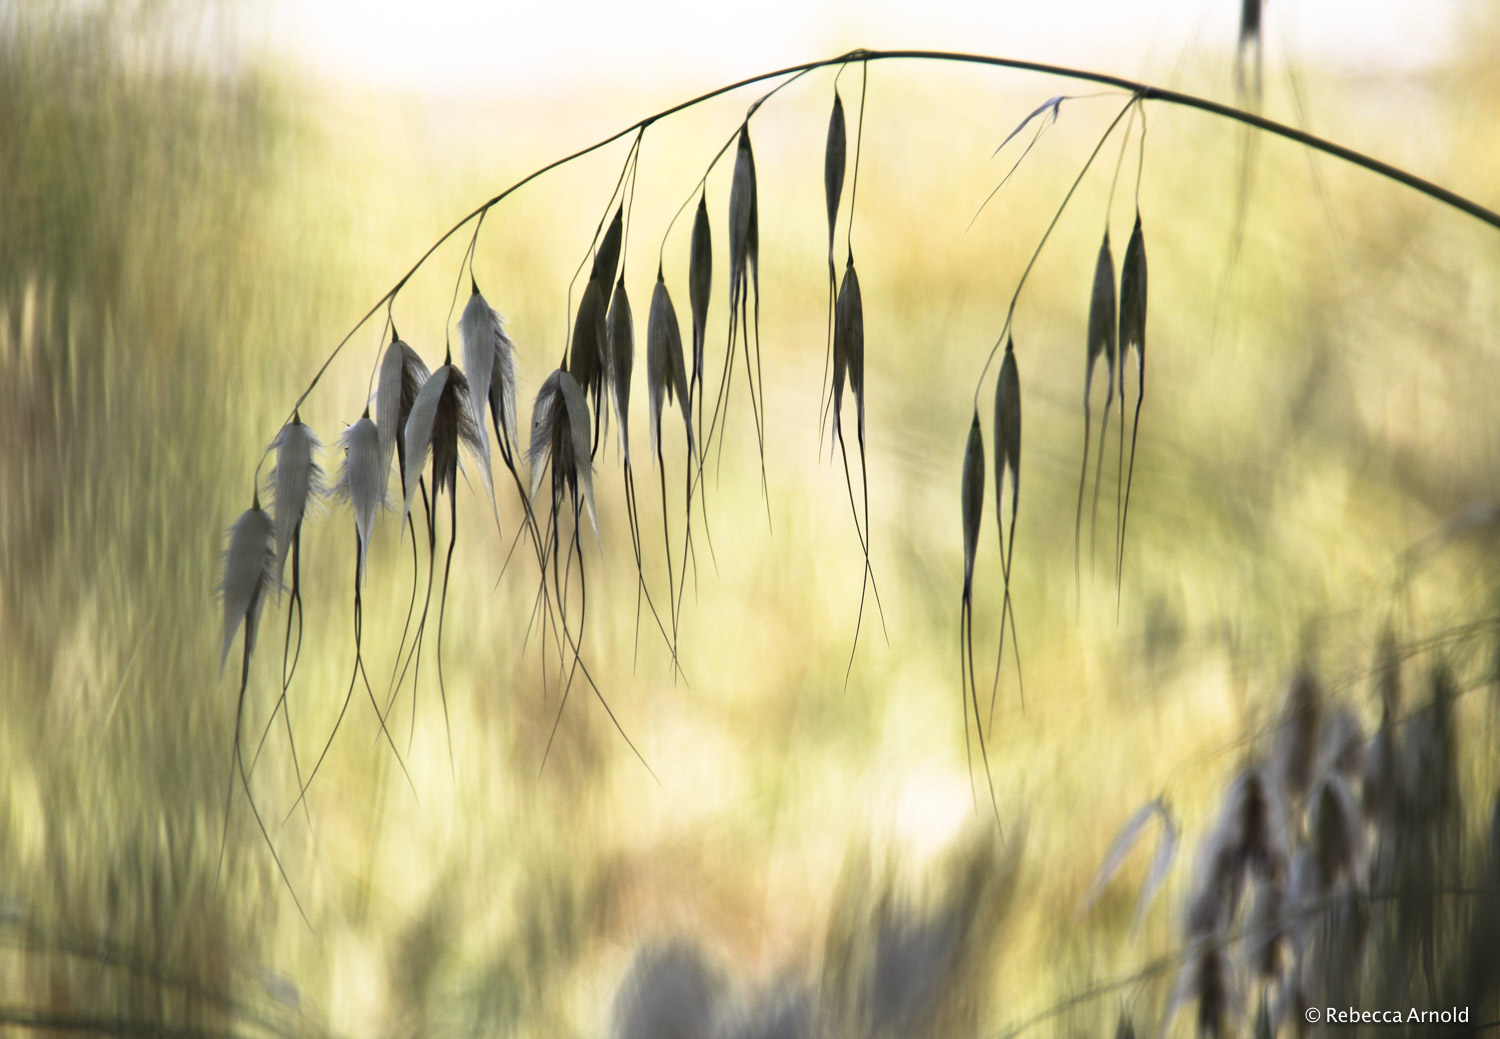 10.Feathered Oats, Italy 2015